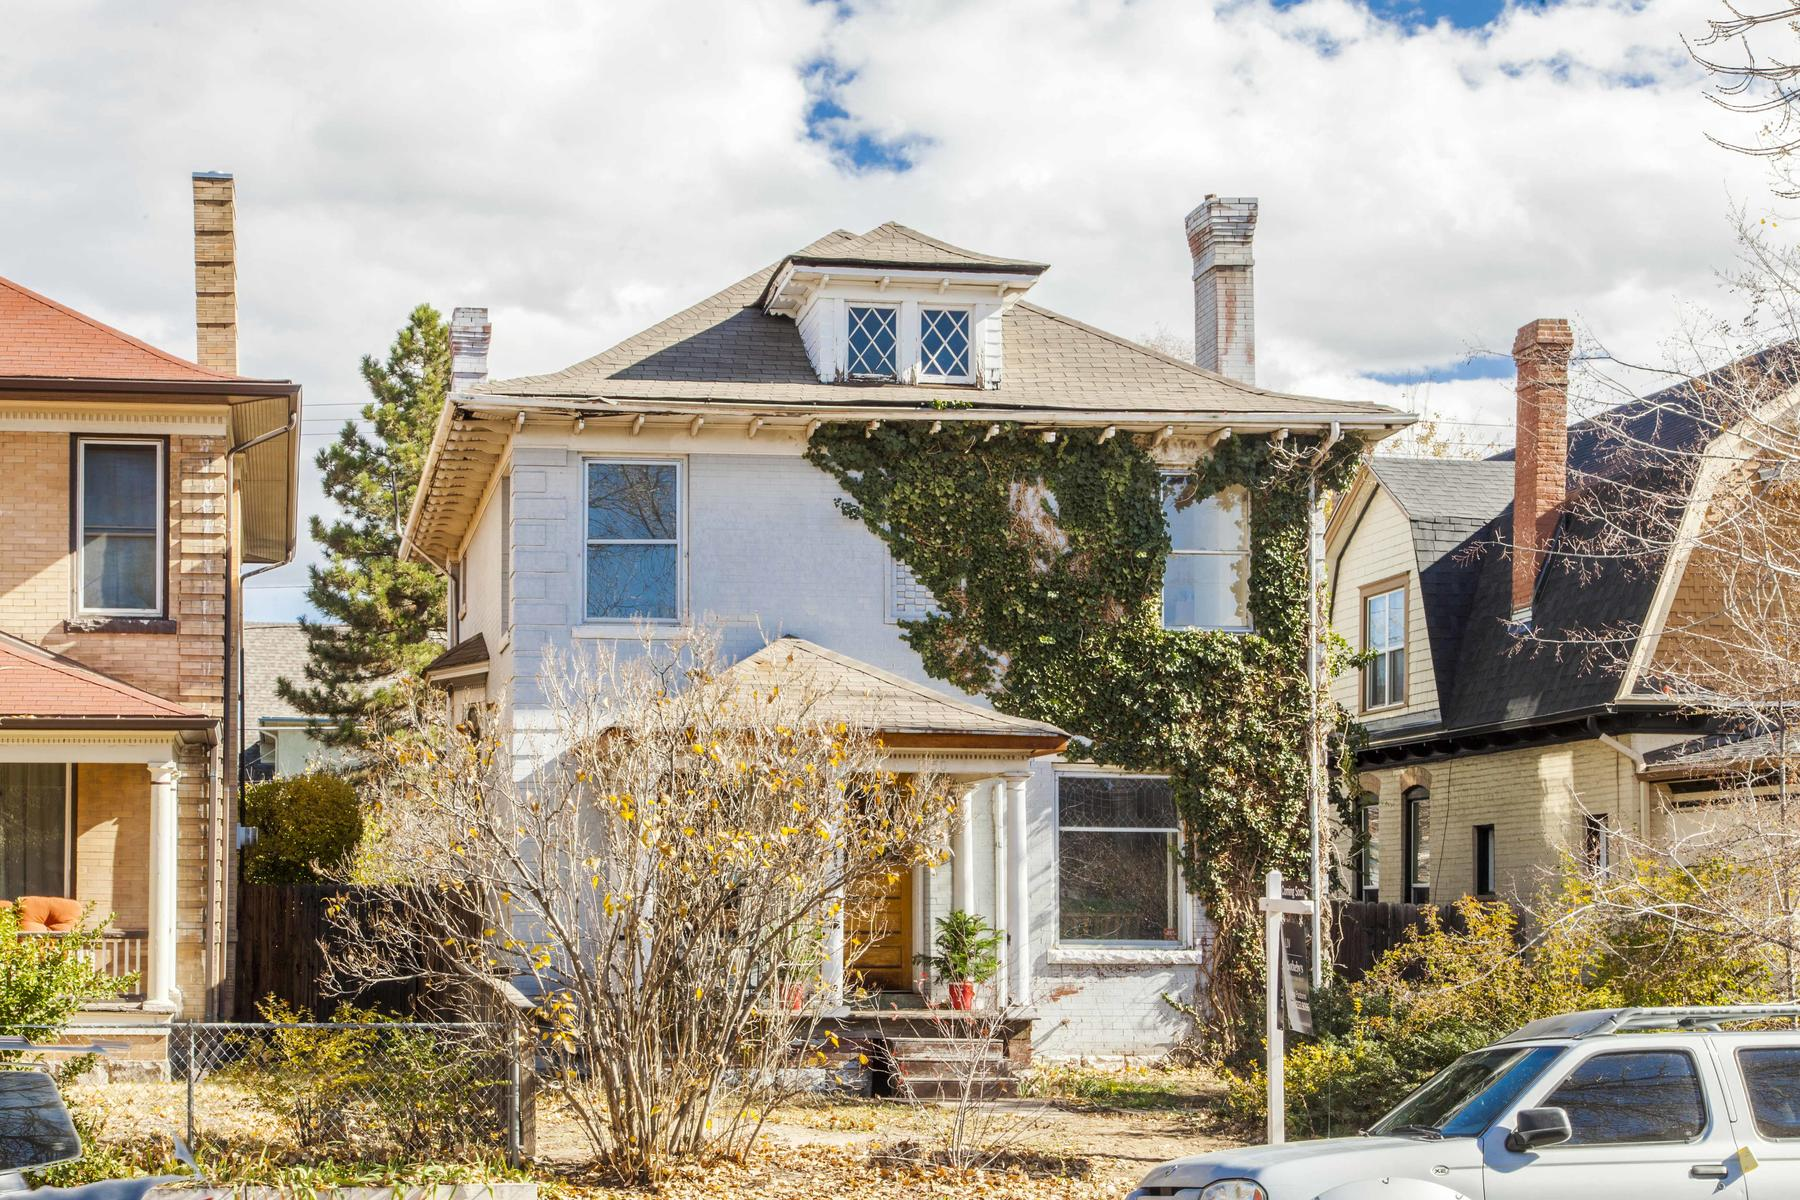 Single Family Home for Active at 1050 Clarkson Street 1050 Clarkson Street Denver, Colorado 80218 United States